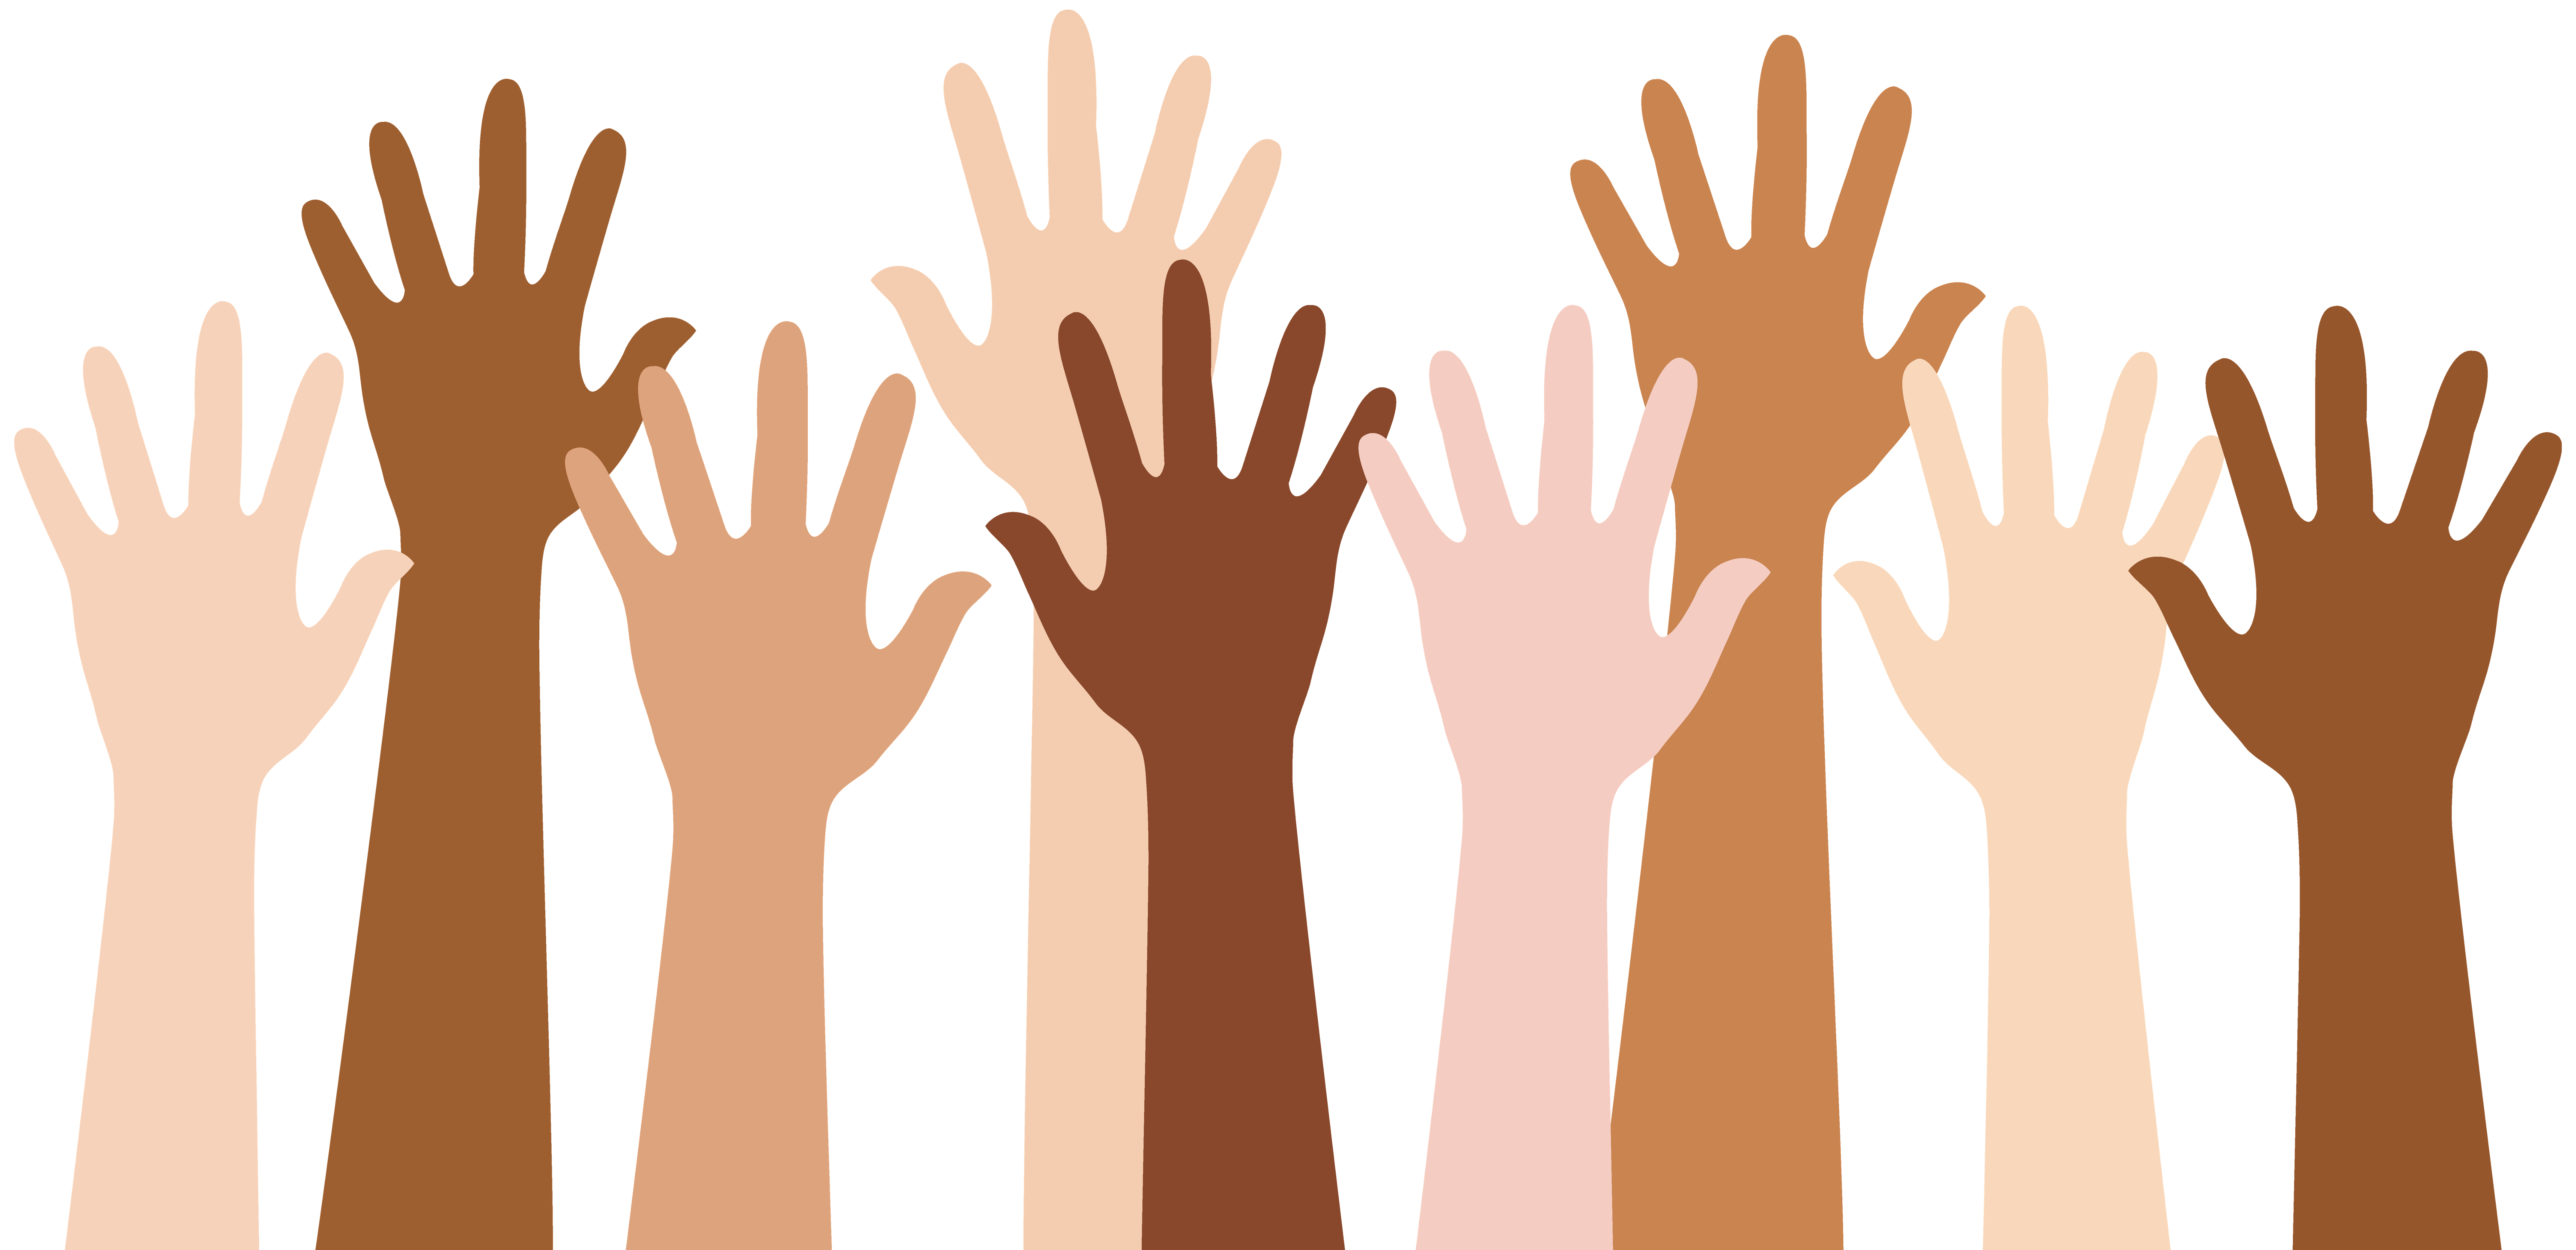 Applause in sign language clipart images gallery for free.